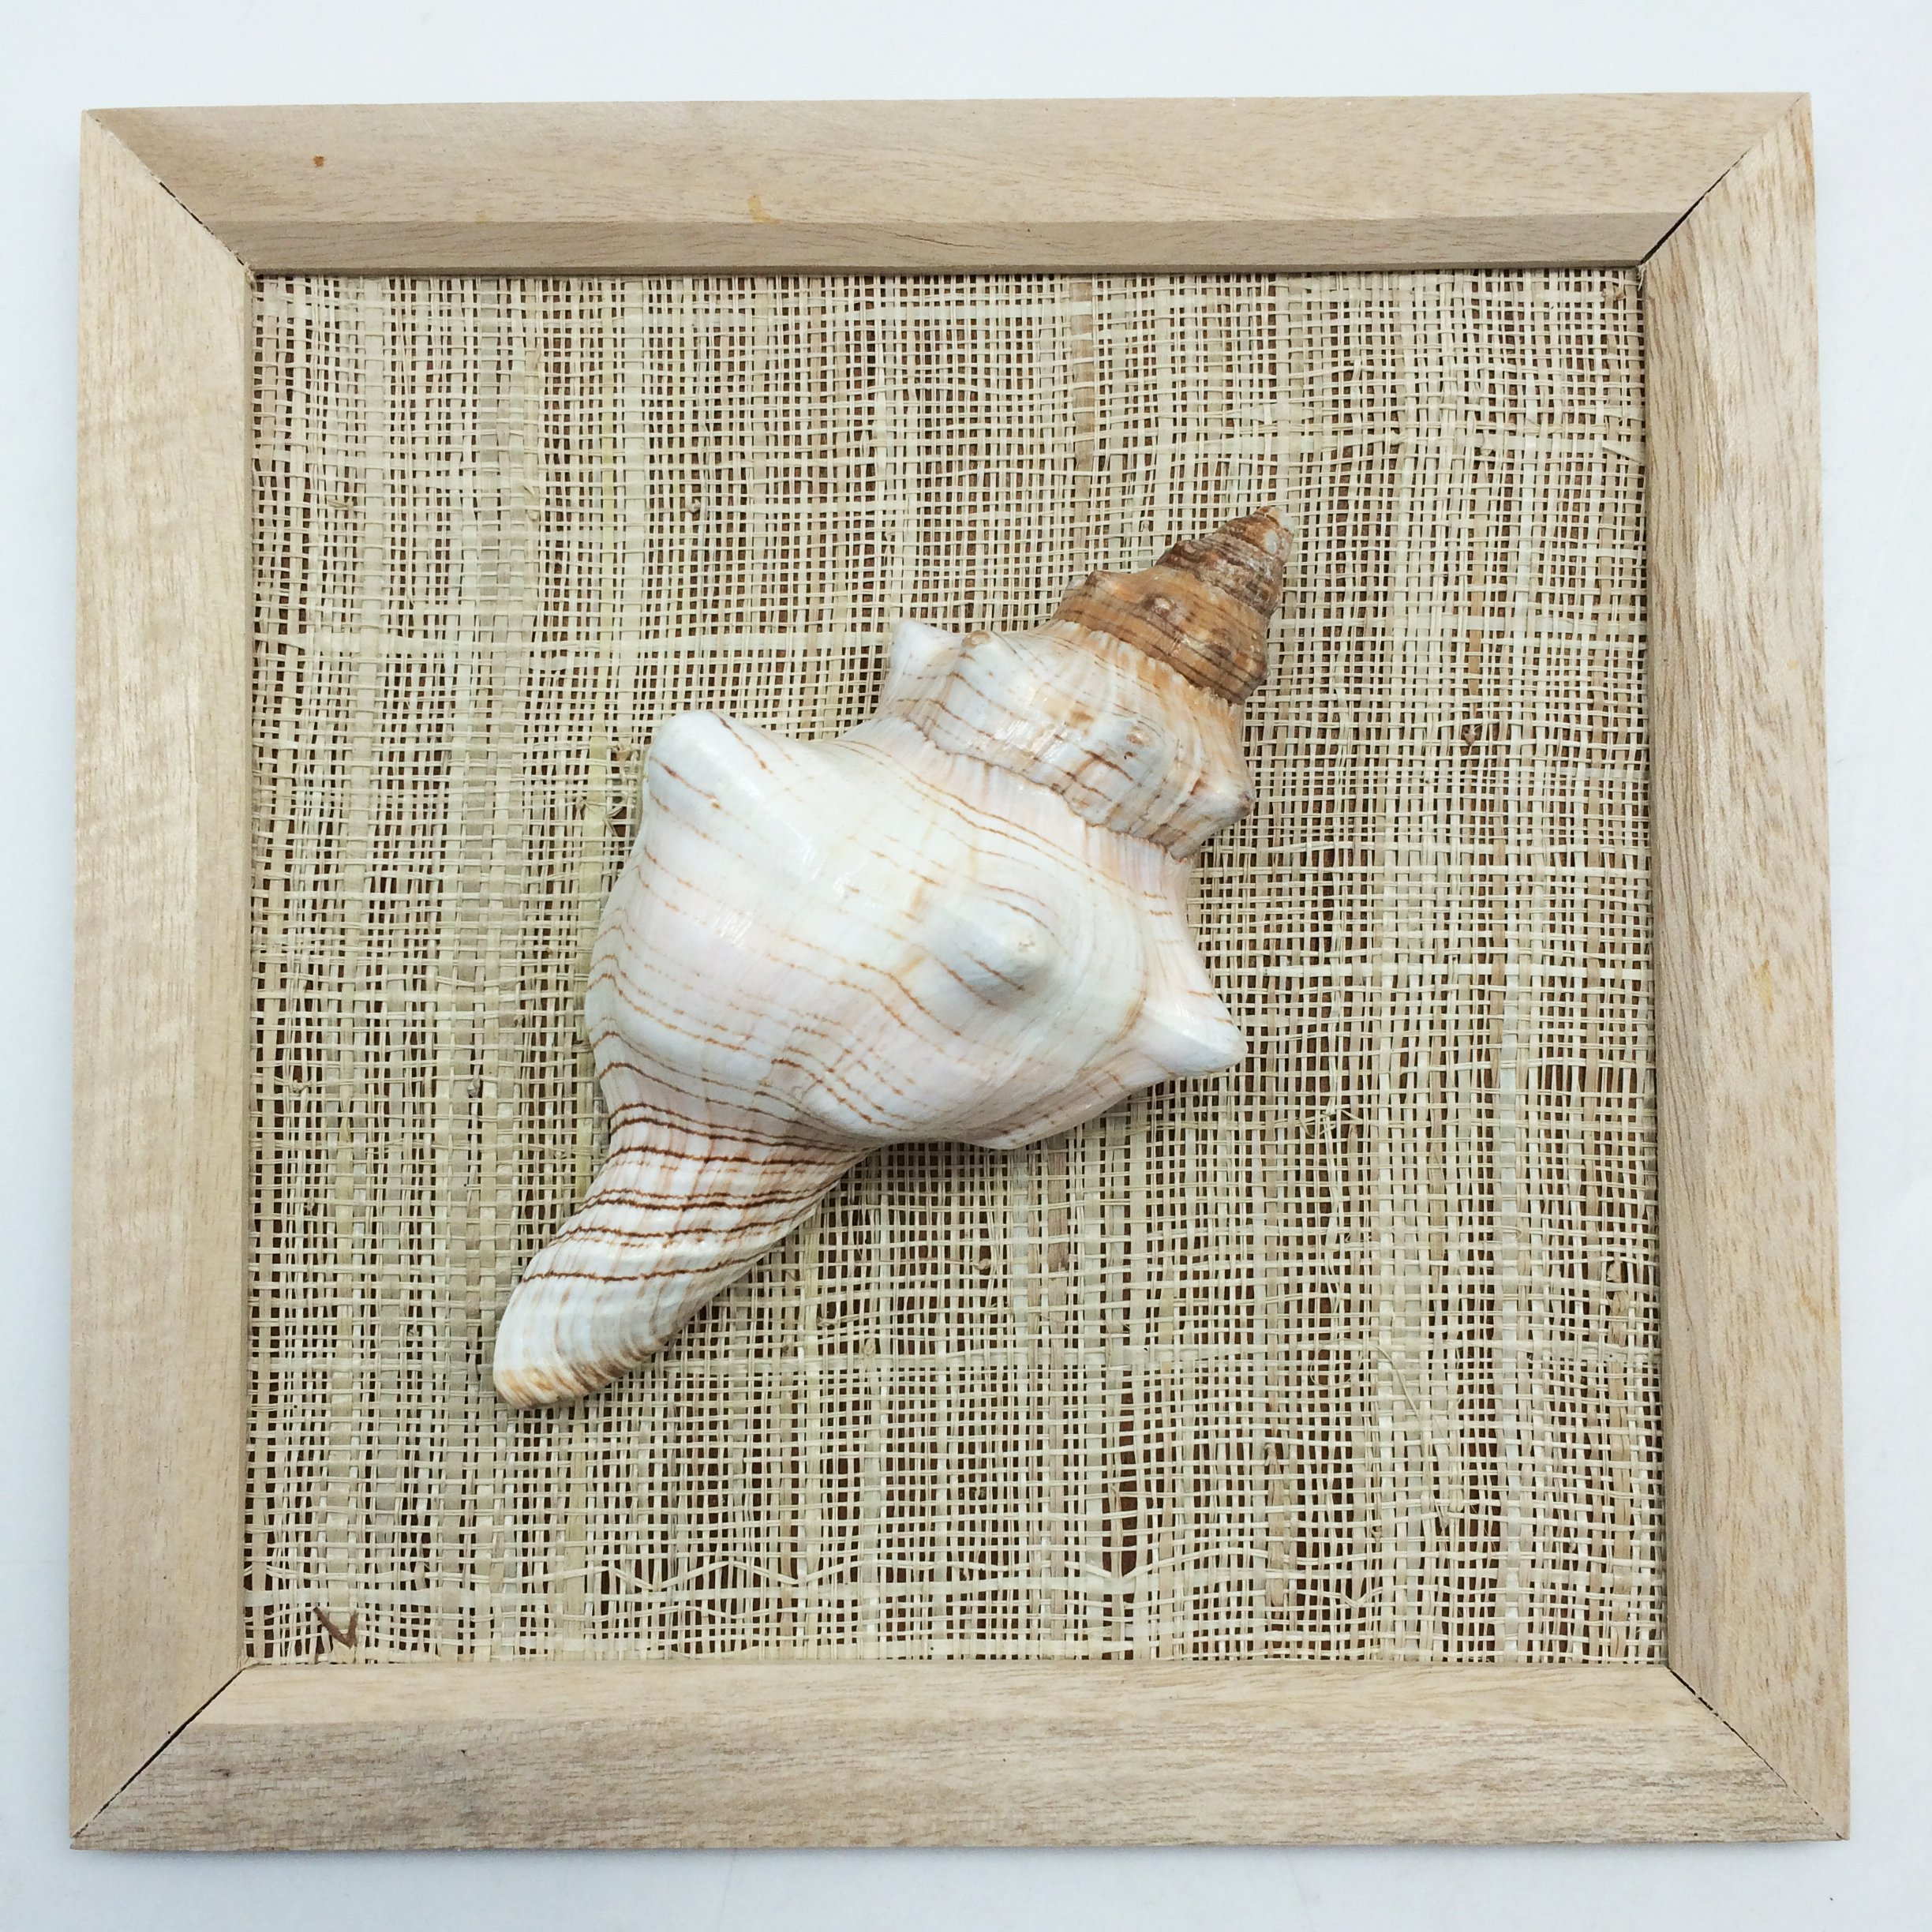 PEPPERLONELY 8x8 Inch Wood Framed Fox Shell, Sea Shell Art Wall Décor